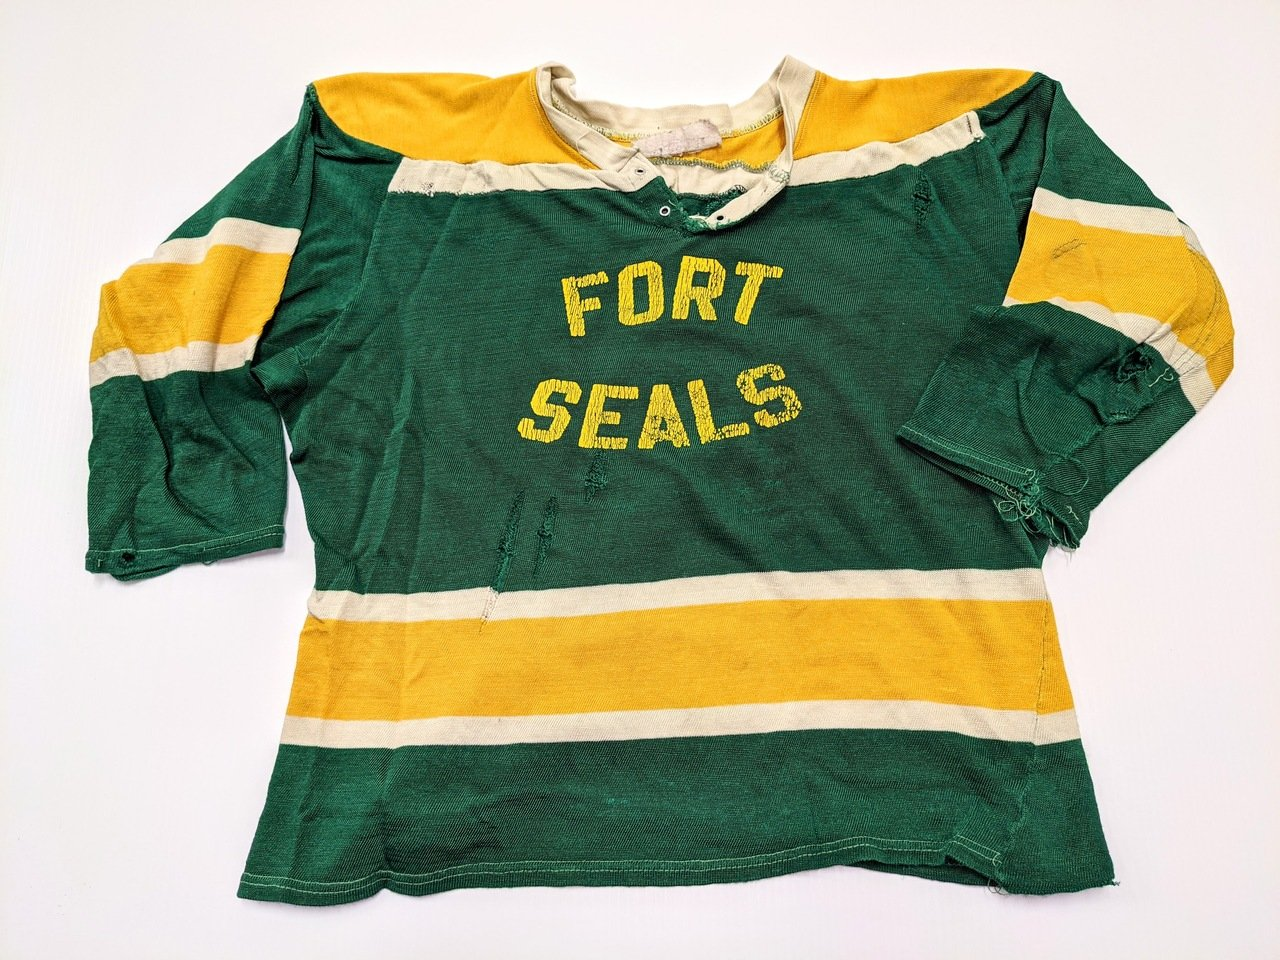 """This hockey Jersey comes from the oldest Hockey Team in Fort Vermilion - The Fort Seals. Sponsored by the S. Stephens store this team dates back to the 1940's. The Jersey is small in stature with short sleeves and  wide dimensions typical of a goalie jersey to accommodate extra padding. We do not have information on the significance of the name """"Seals""""  05/07/2021 2020.59.23/ Smith Louise"""